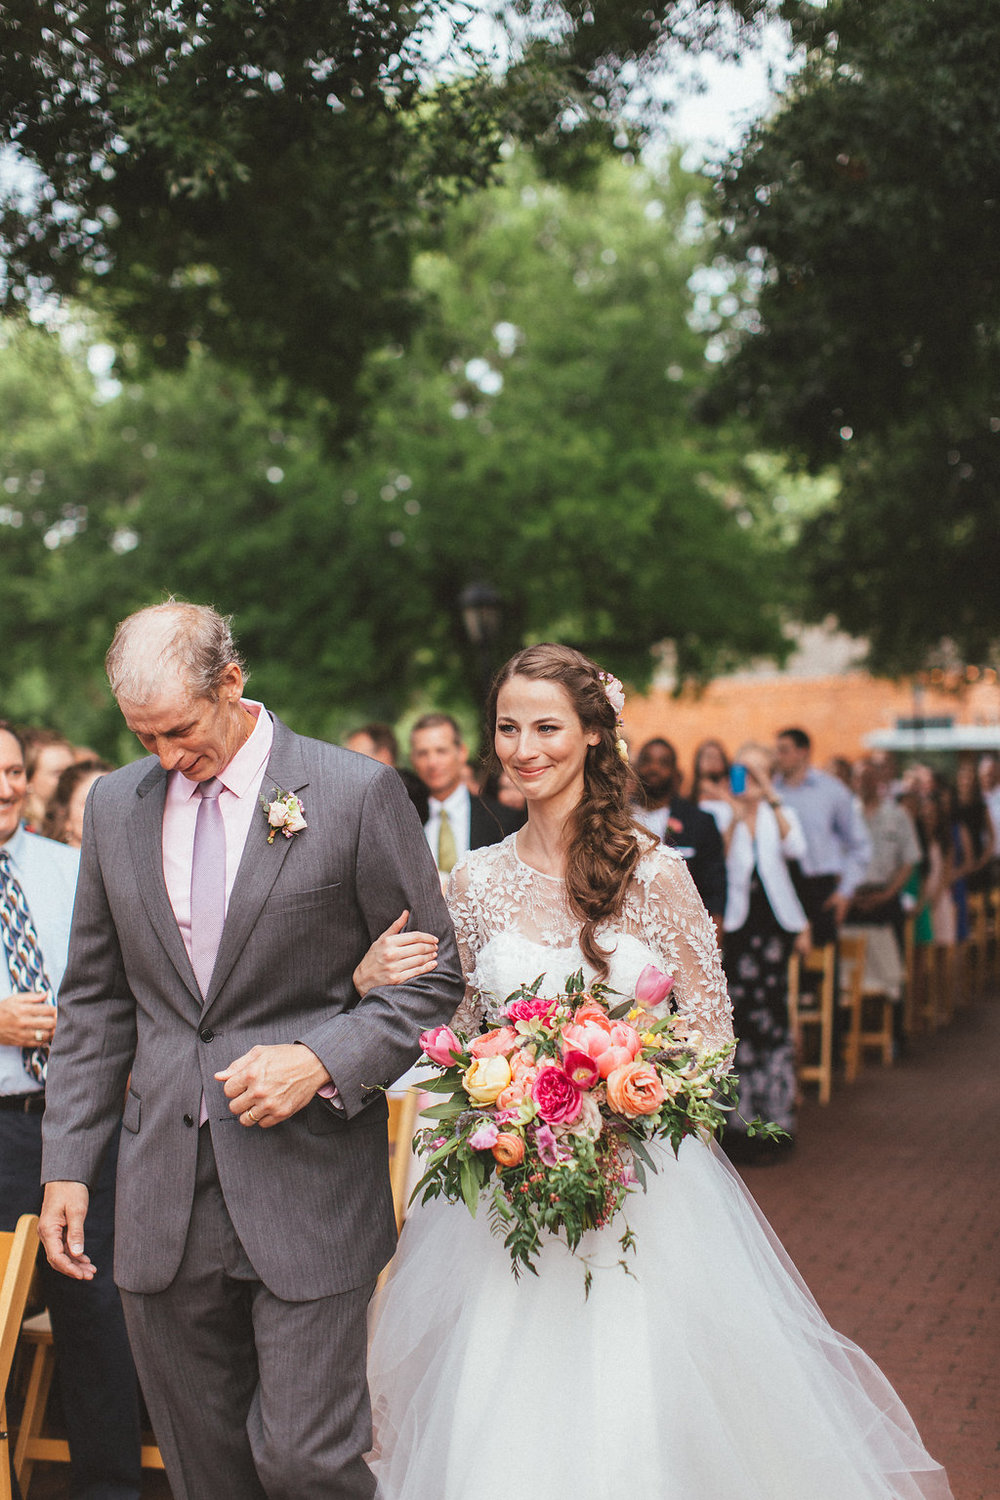 Walking down the aisle // bright, lush floral design in Dallas